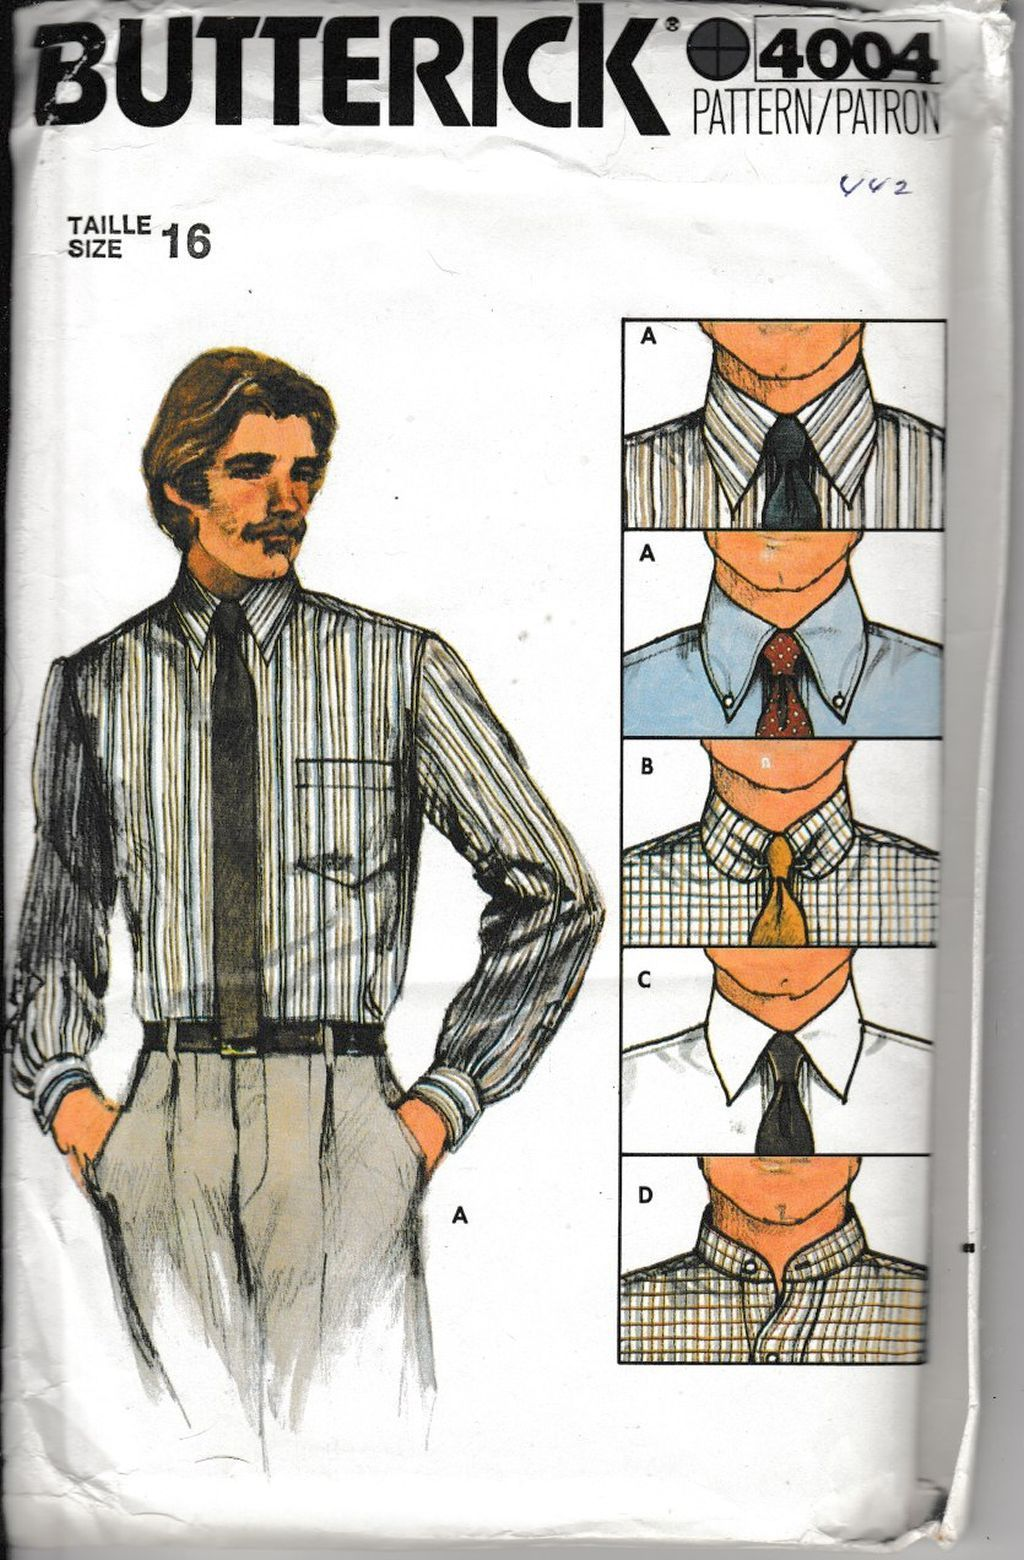 Butterick 4004 Mens' Shirt Collar Variations Vintage 1980's Sewing Pattern - VintageStitching - Vintage Sewing Patterns